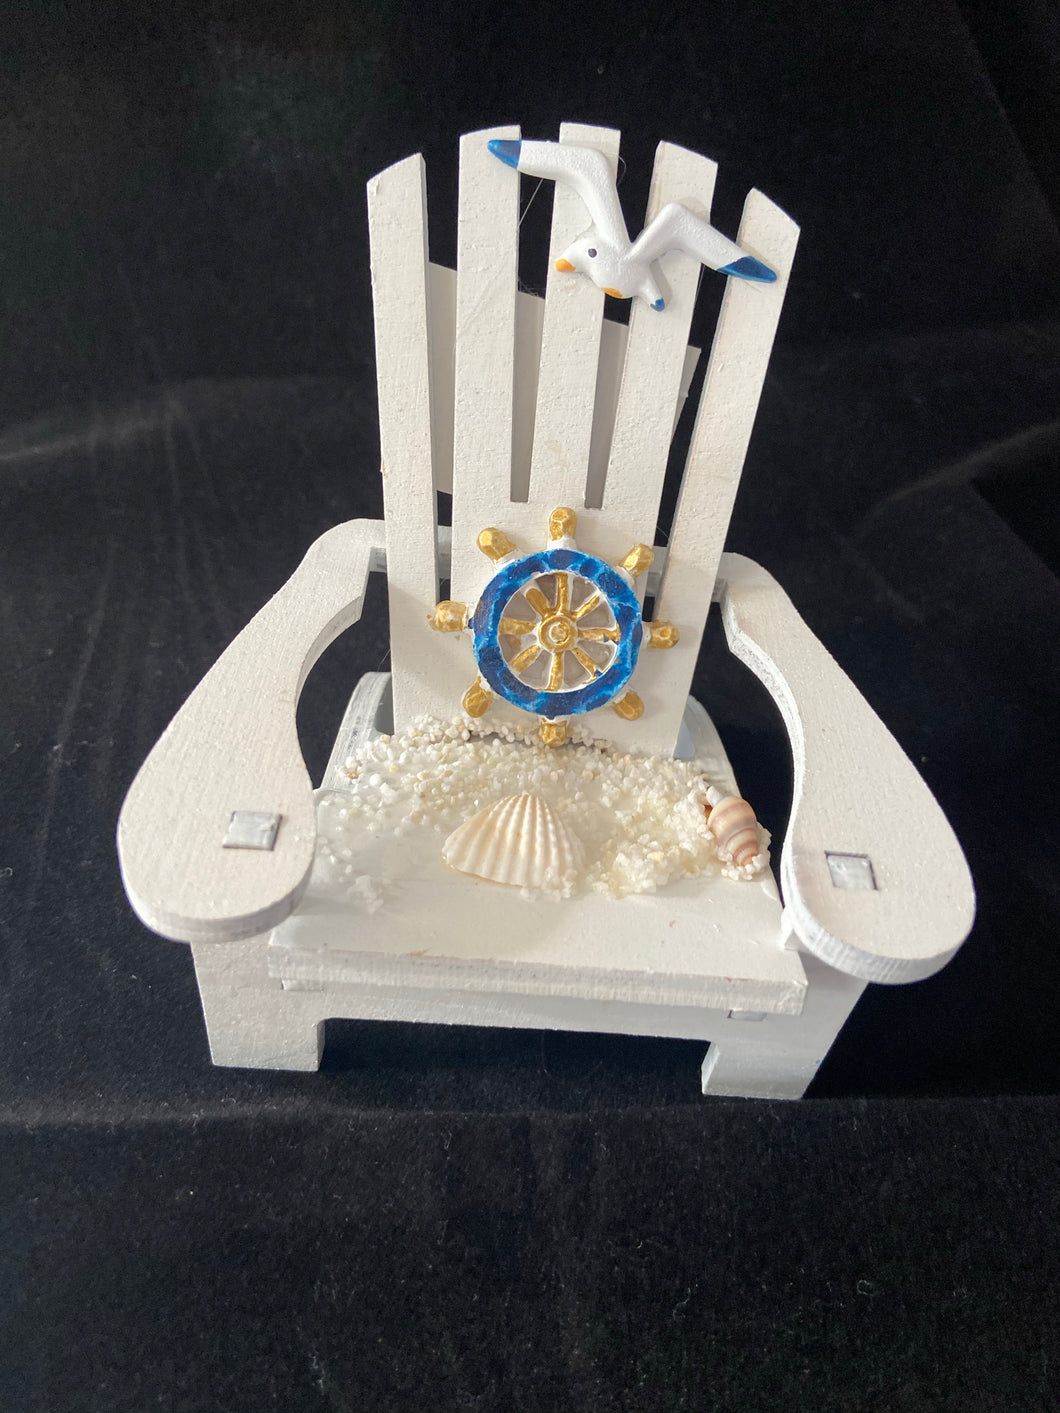 Adirondack chair with ship wheel